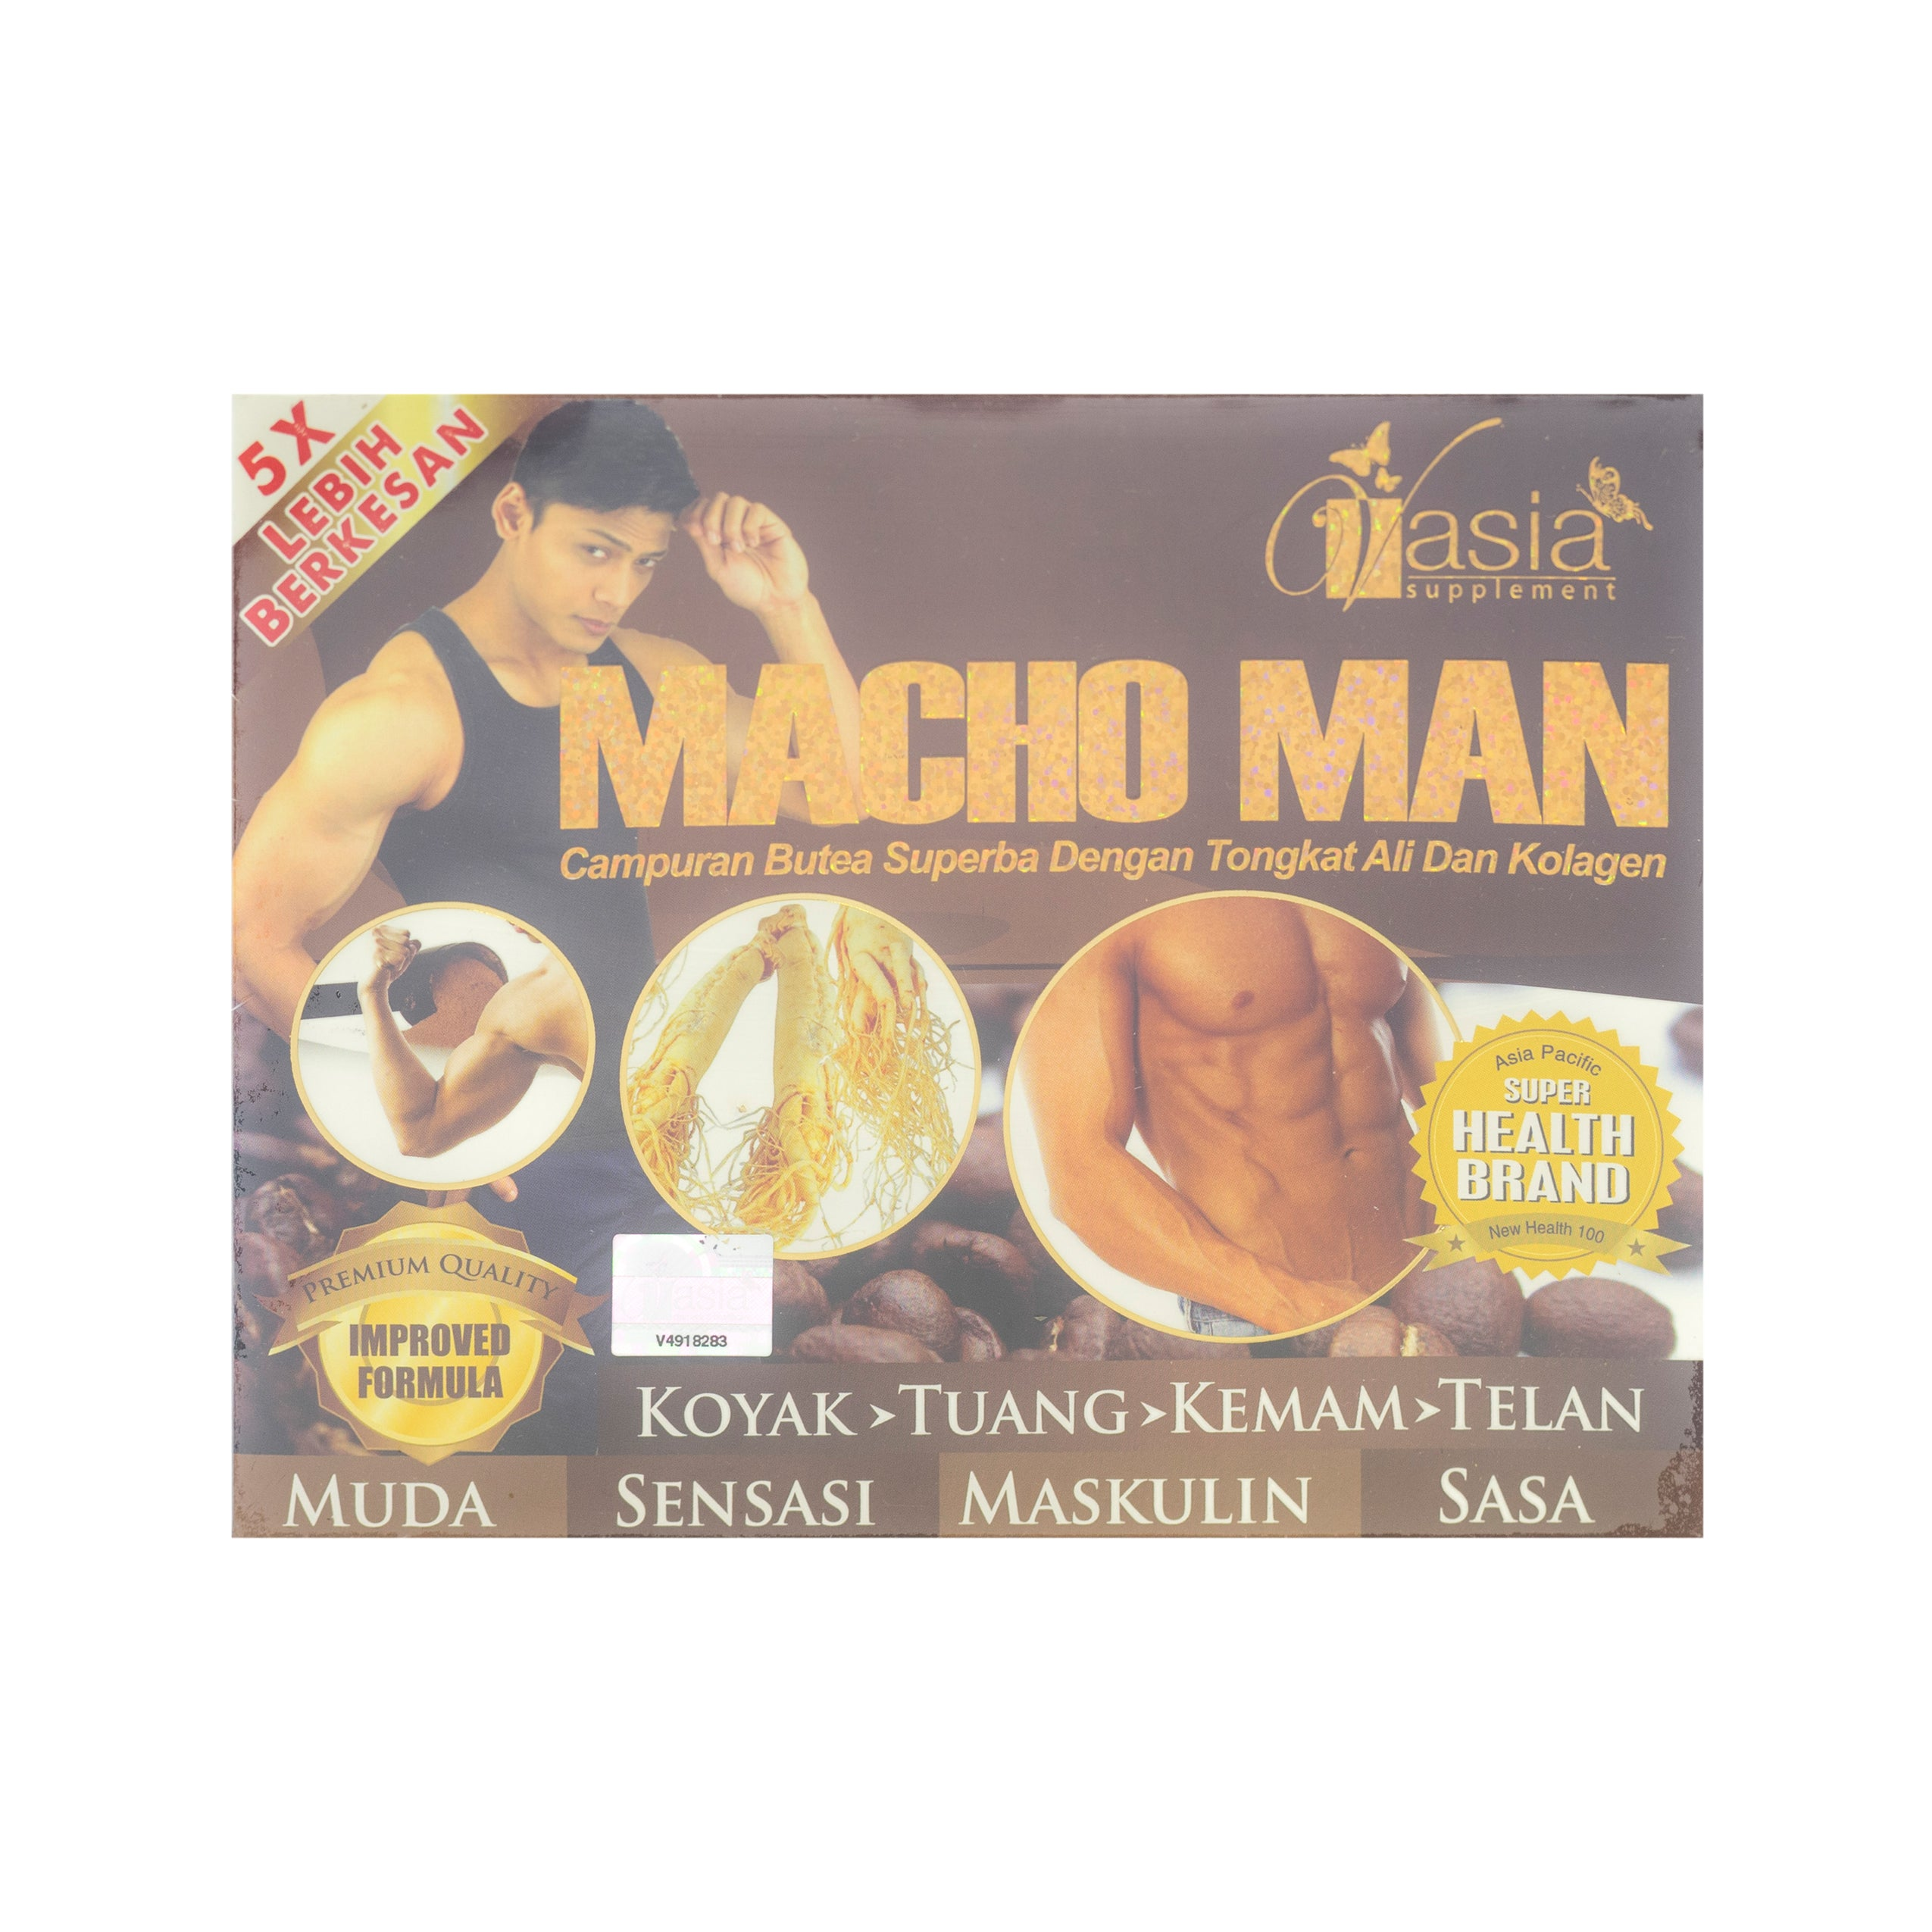 V'Asia, Macho Man, 10 sachet X 4 gm